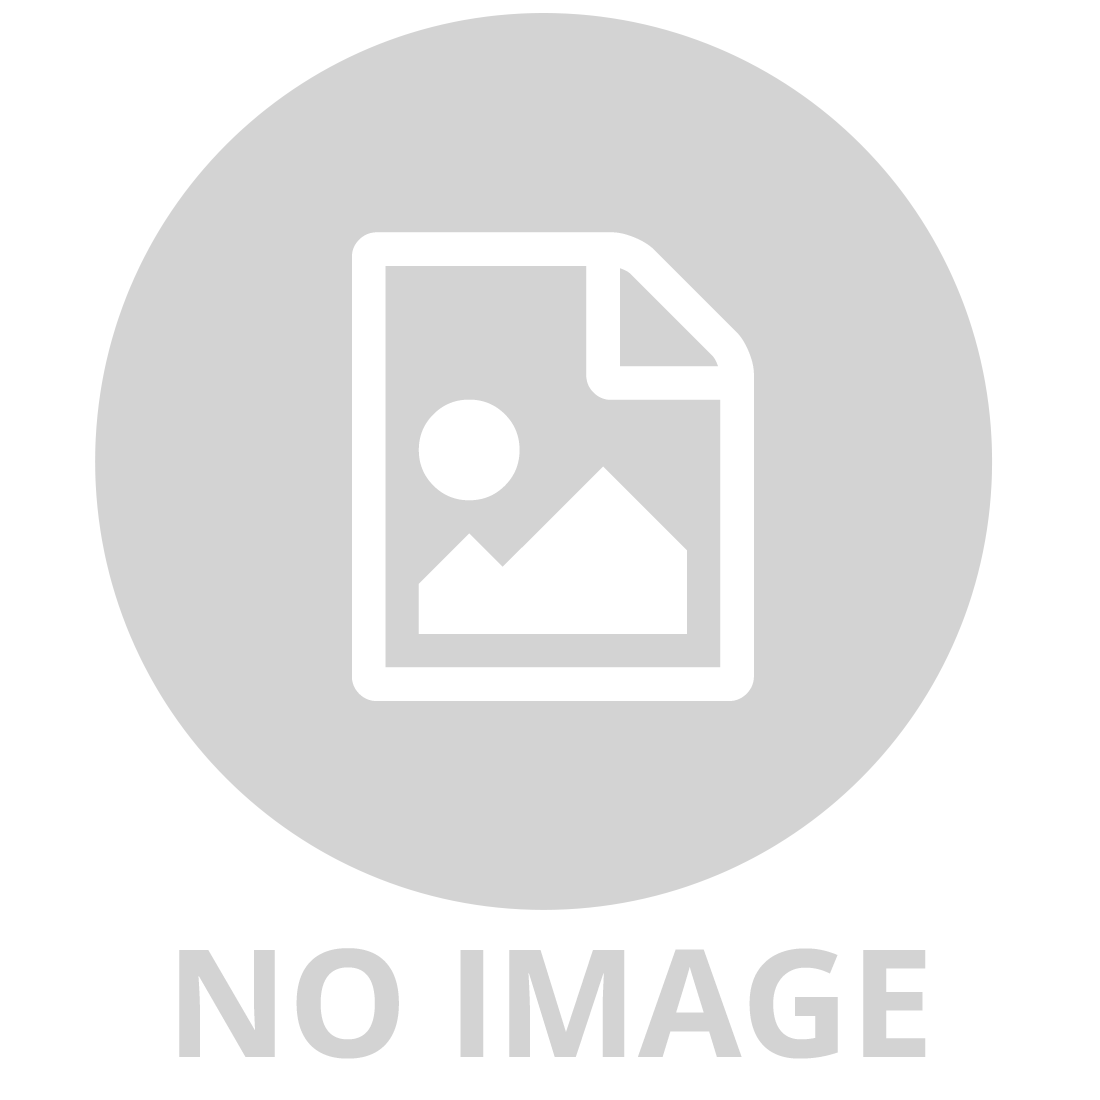 FIRST CREATIONS FIRST DRAWING & COLOURING SET